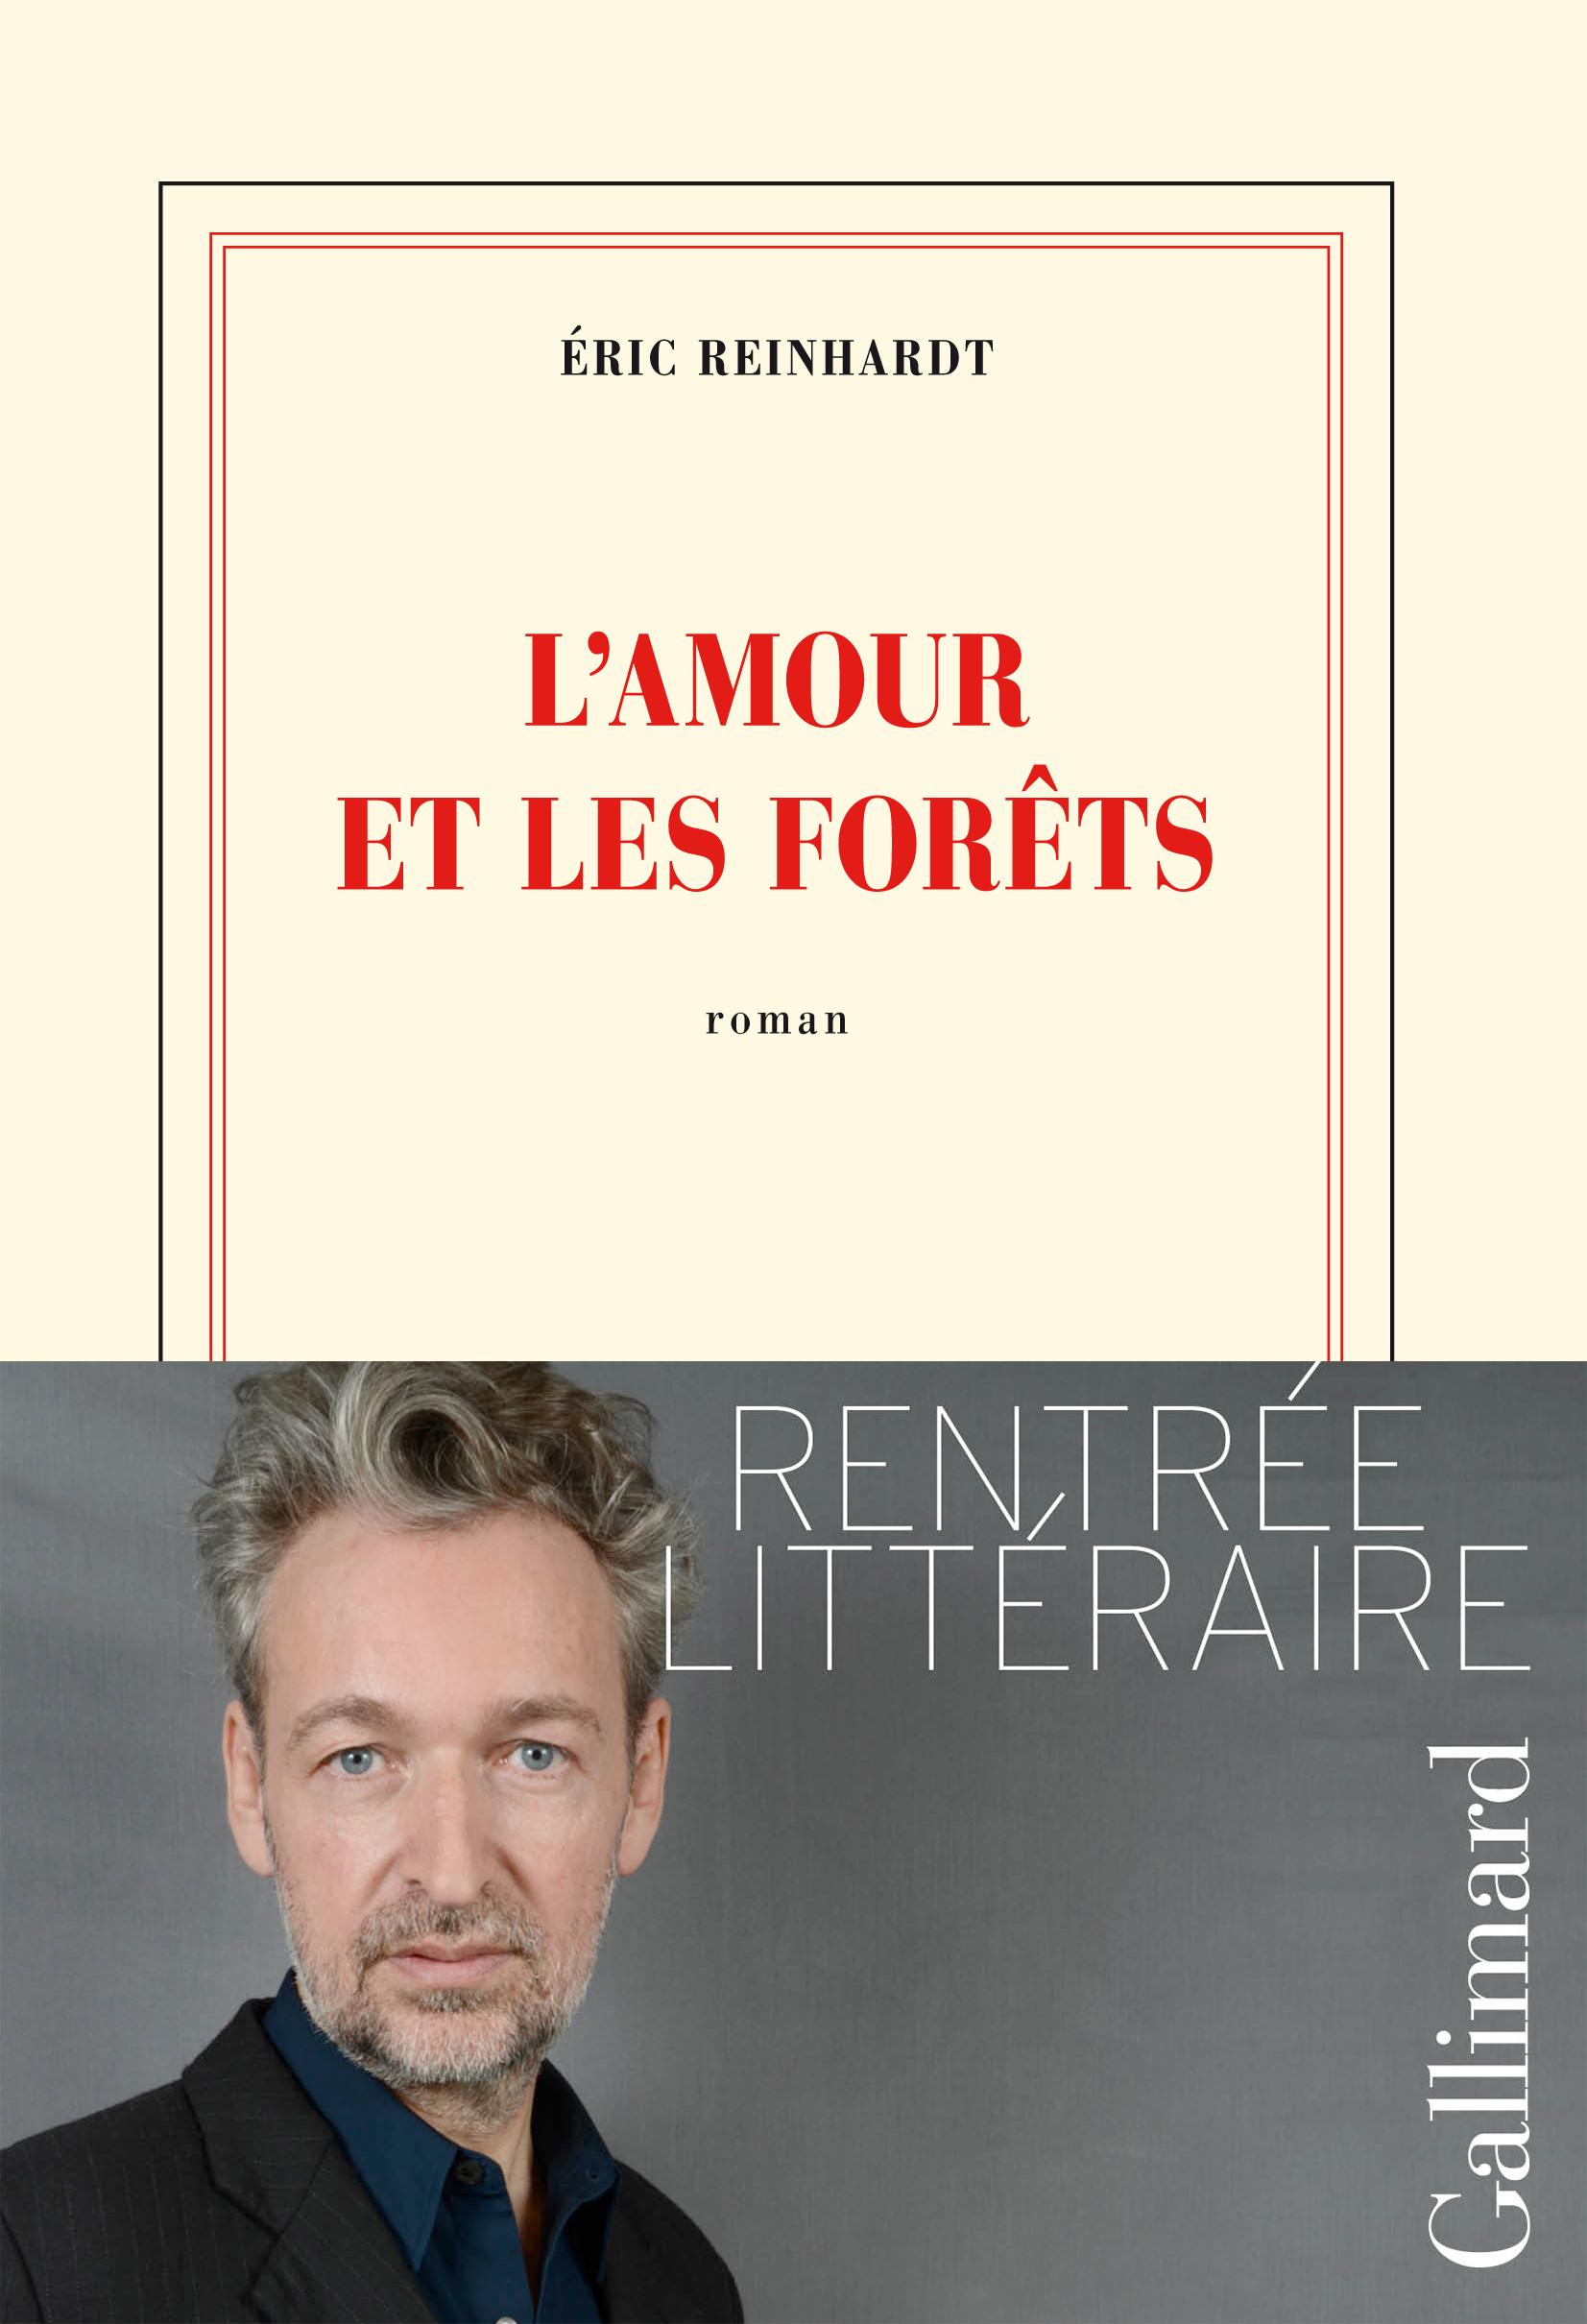 http://www.images-booknode.com/book_cover/504/full/l-amour-et-les-forets-504078.jpg